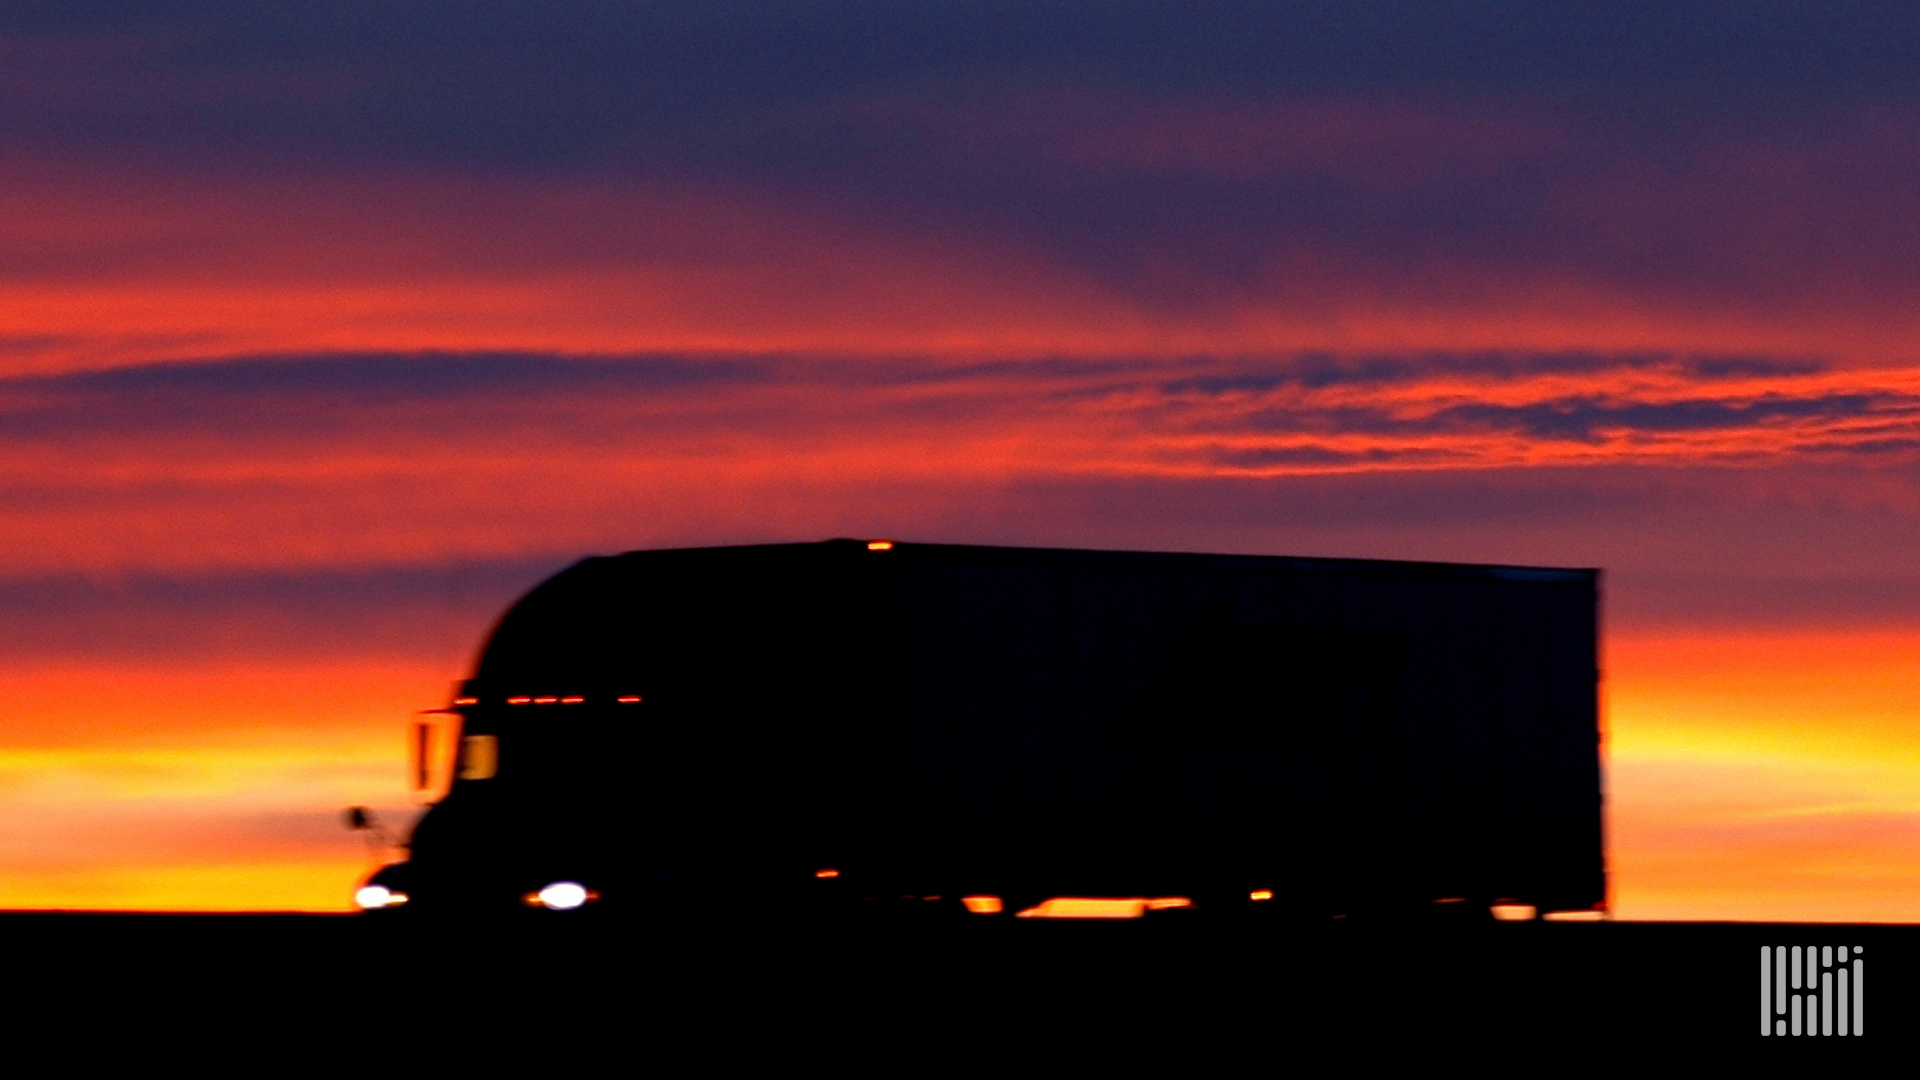 Tractor-trailer on a highway with hot sun on the horizon.